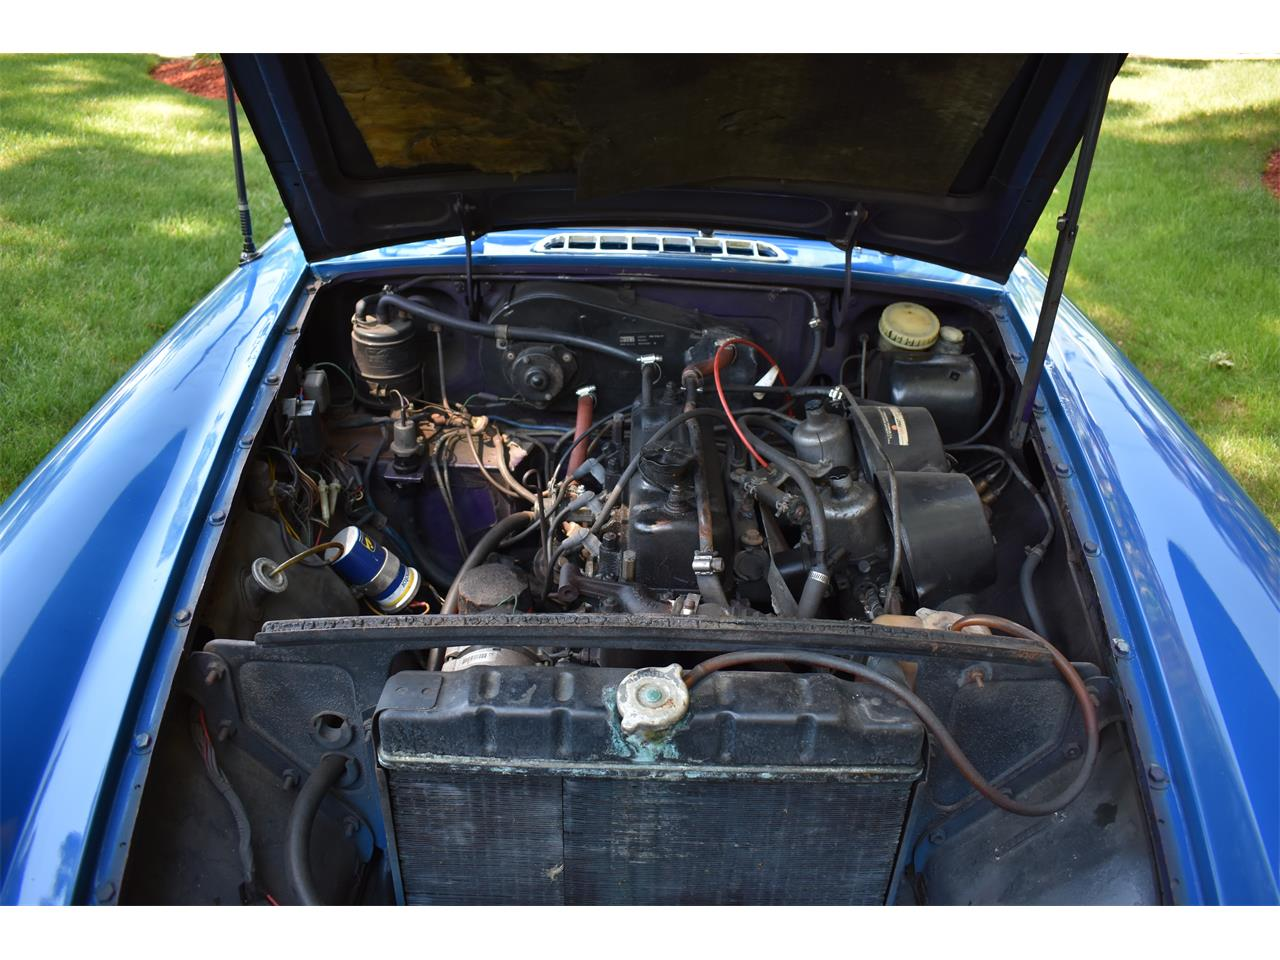 Large Picture of '74 MG MGB - $7,500.00 Offered by a Private Seller - LB9Q